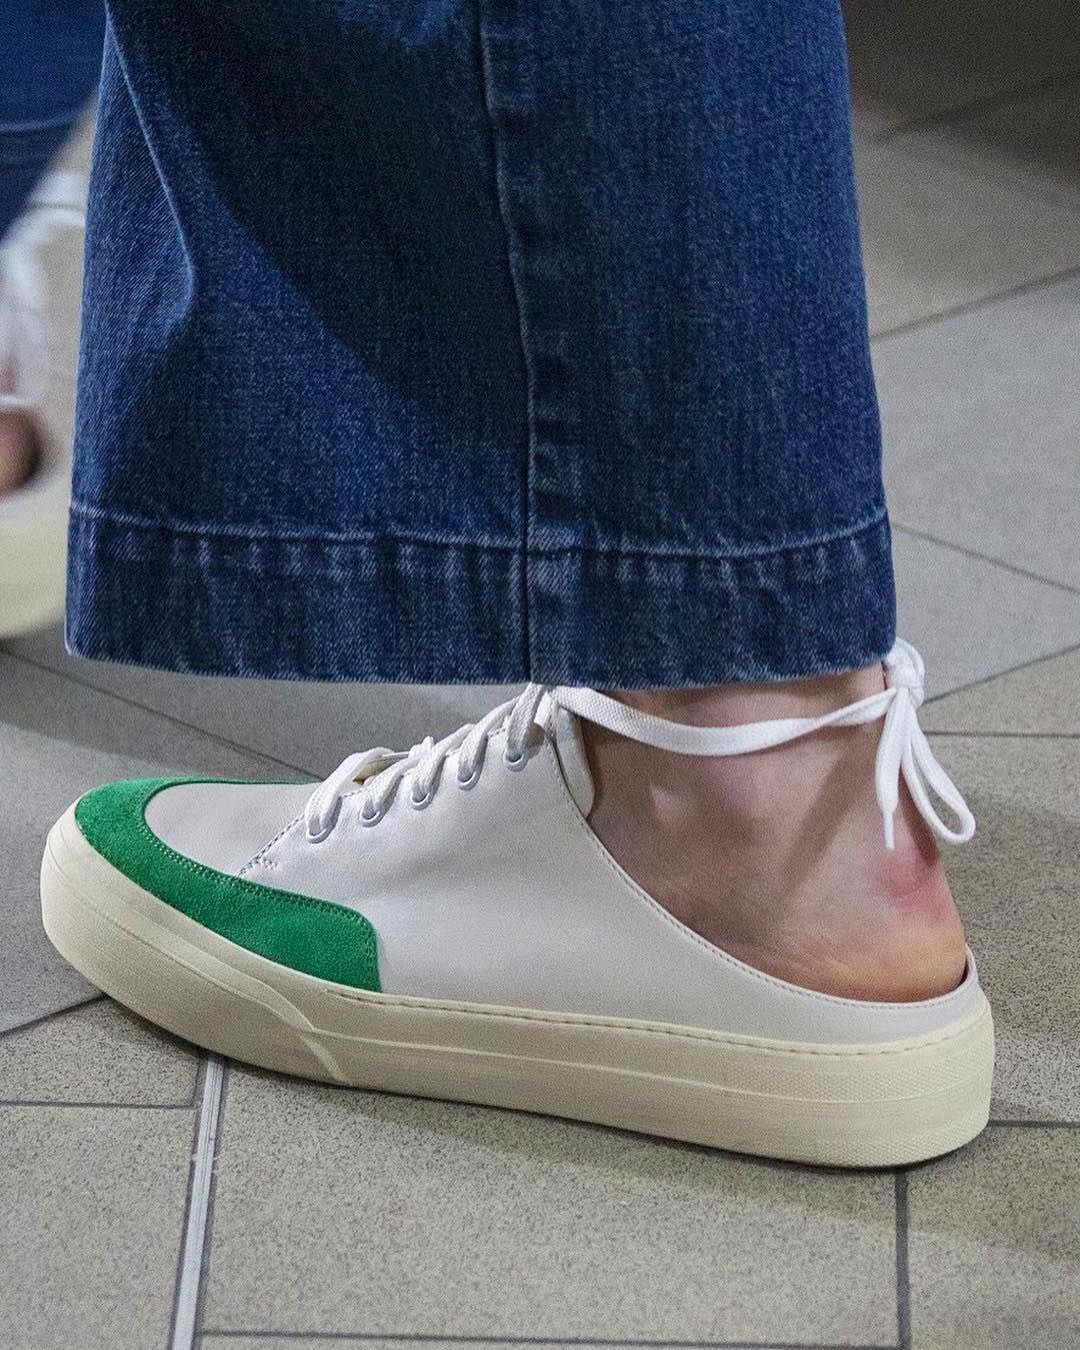 Hypebeast, Contemporary, Modern, Comment, Green, Shoes, Instagram, Mood,  Menswear